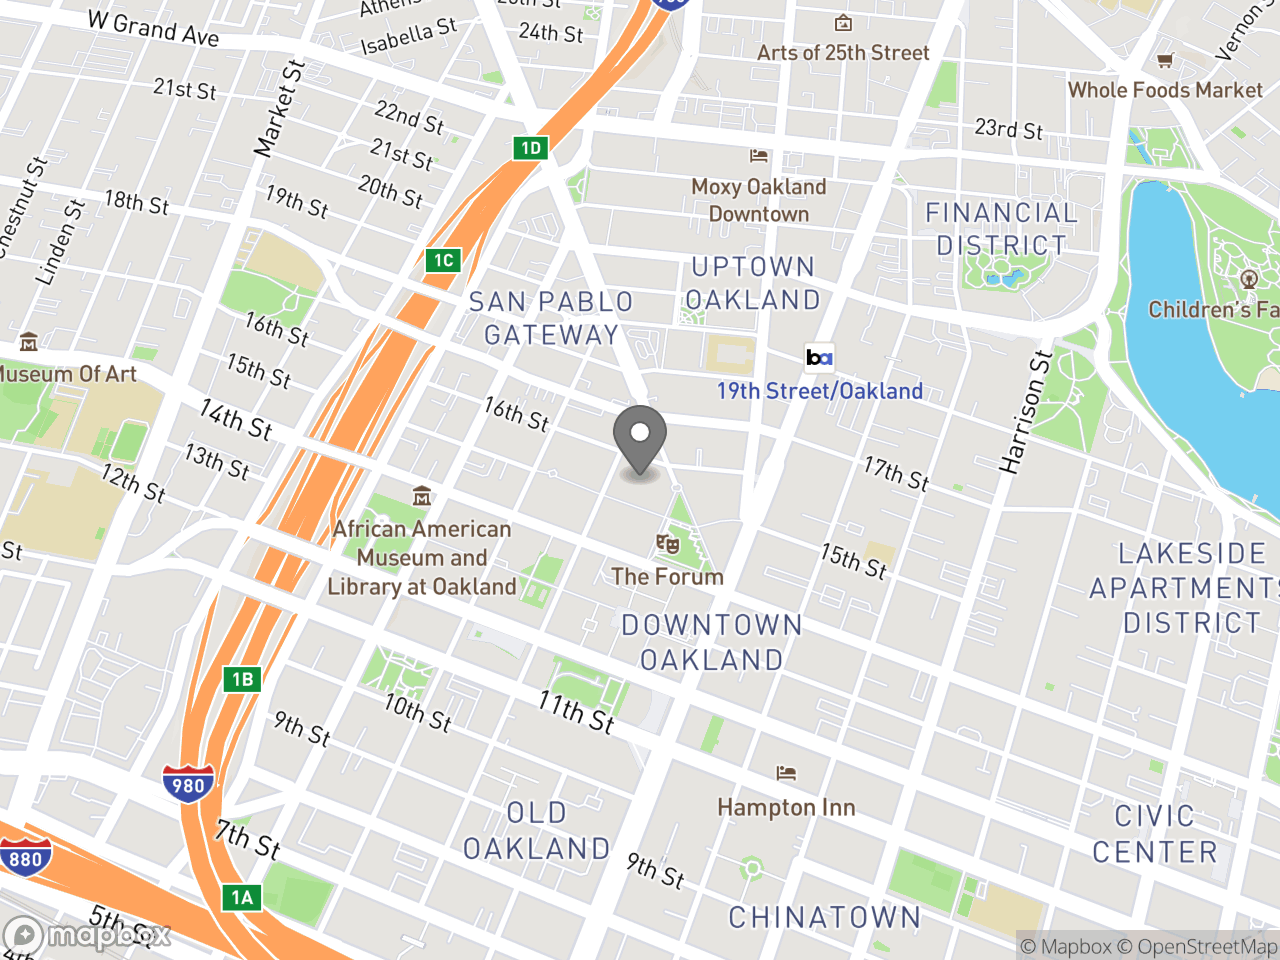 Map location for Environmental Review, located at 250 Frank H. Ogawa Plaza in Oakland, CA 94612